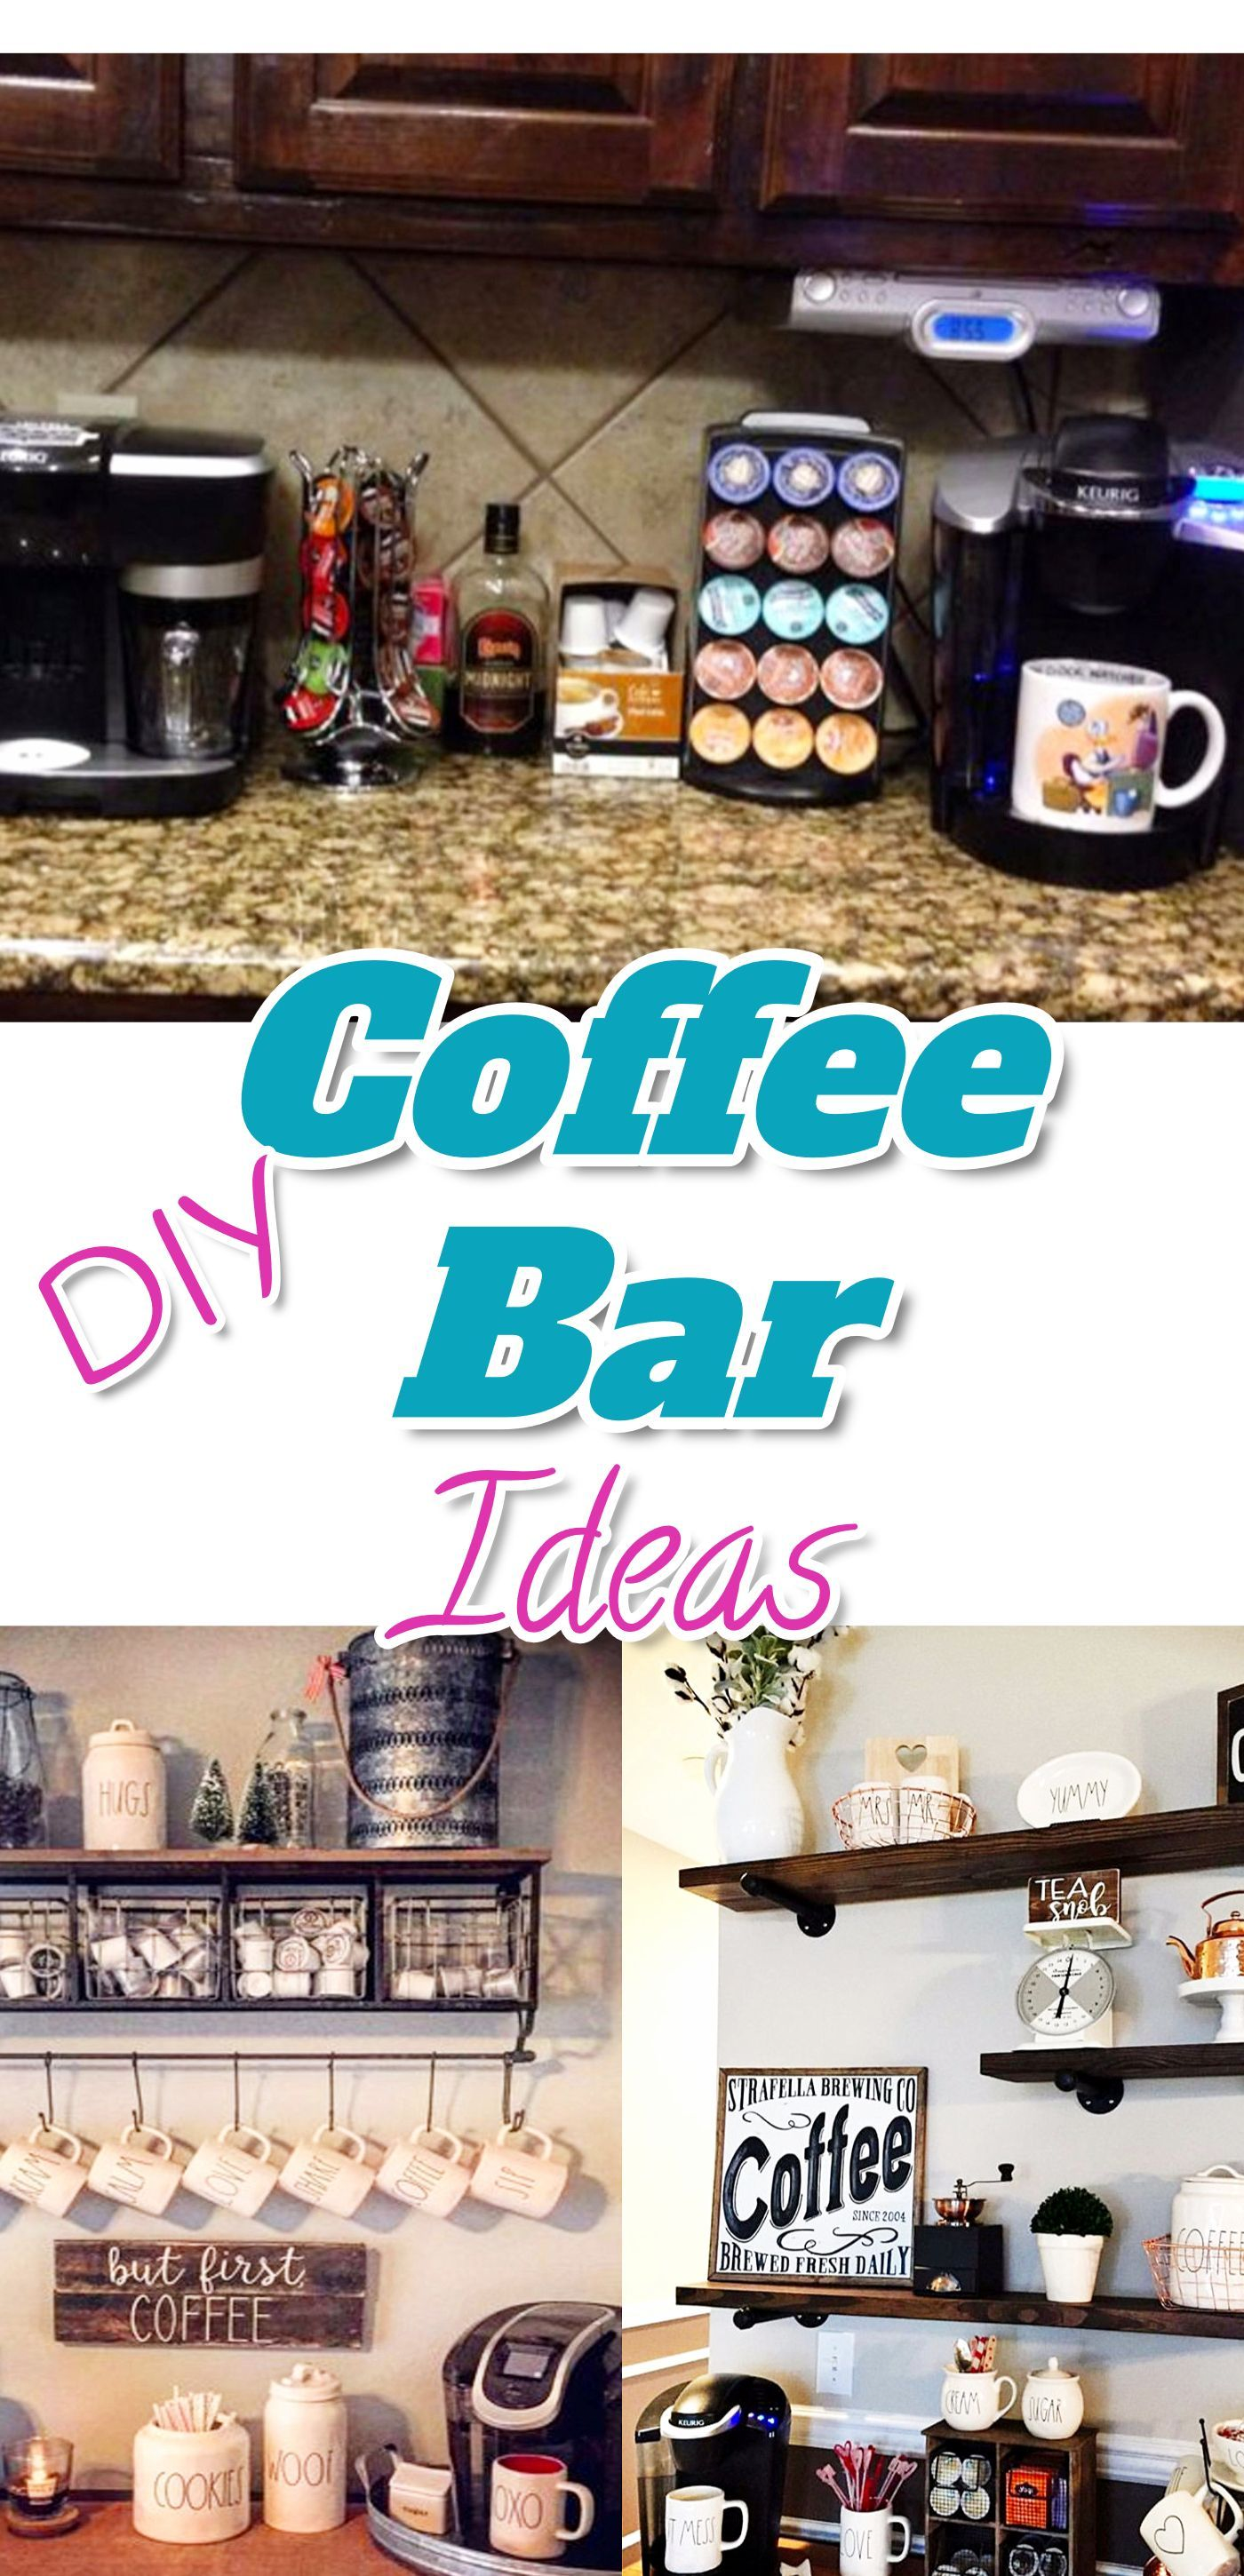 DIY ciffee bar ideas - make your own coffee bar / coffee station set ...